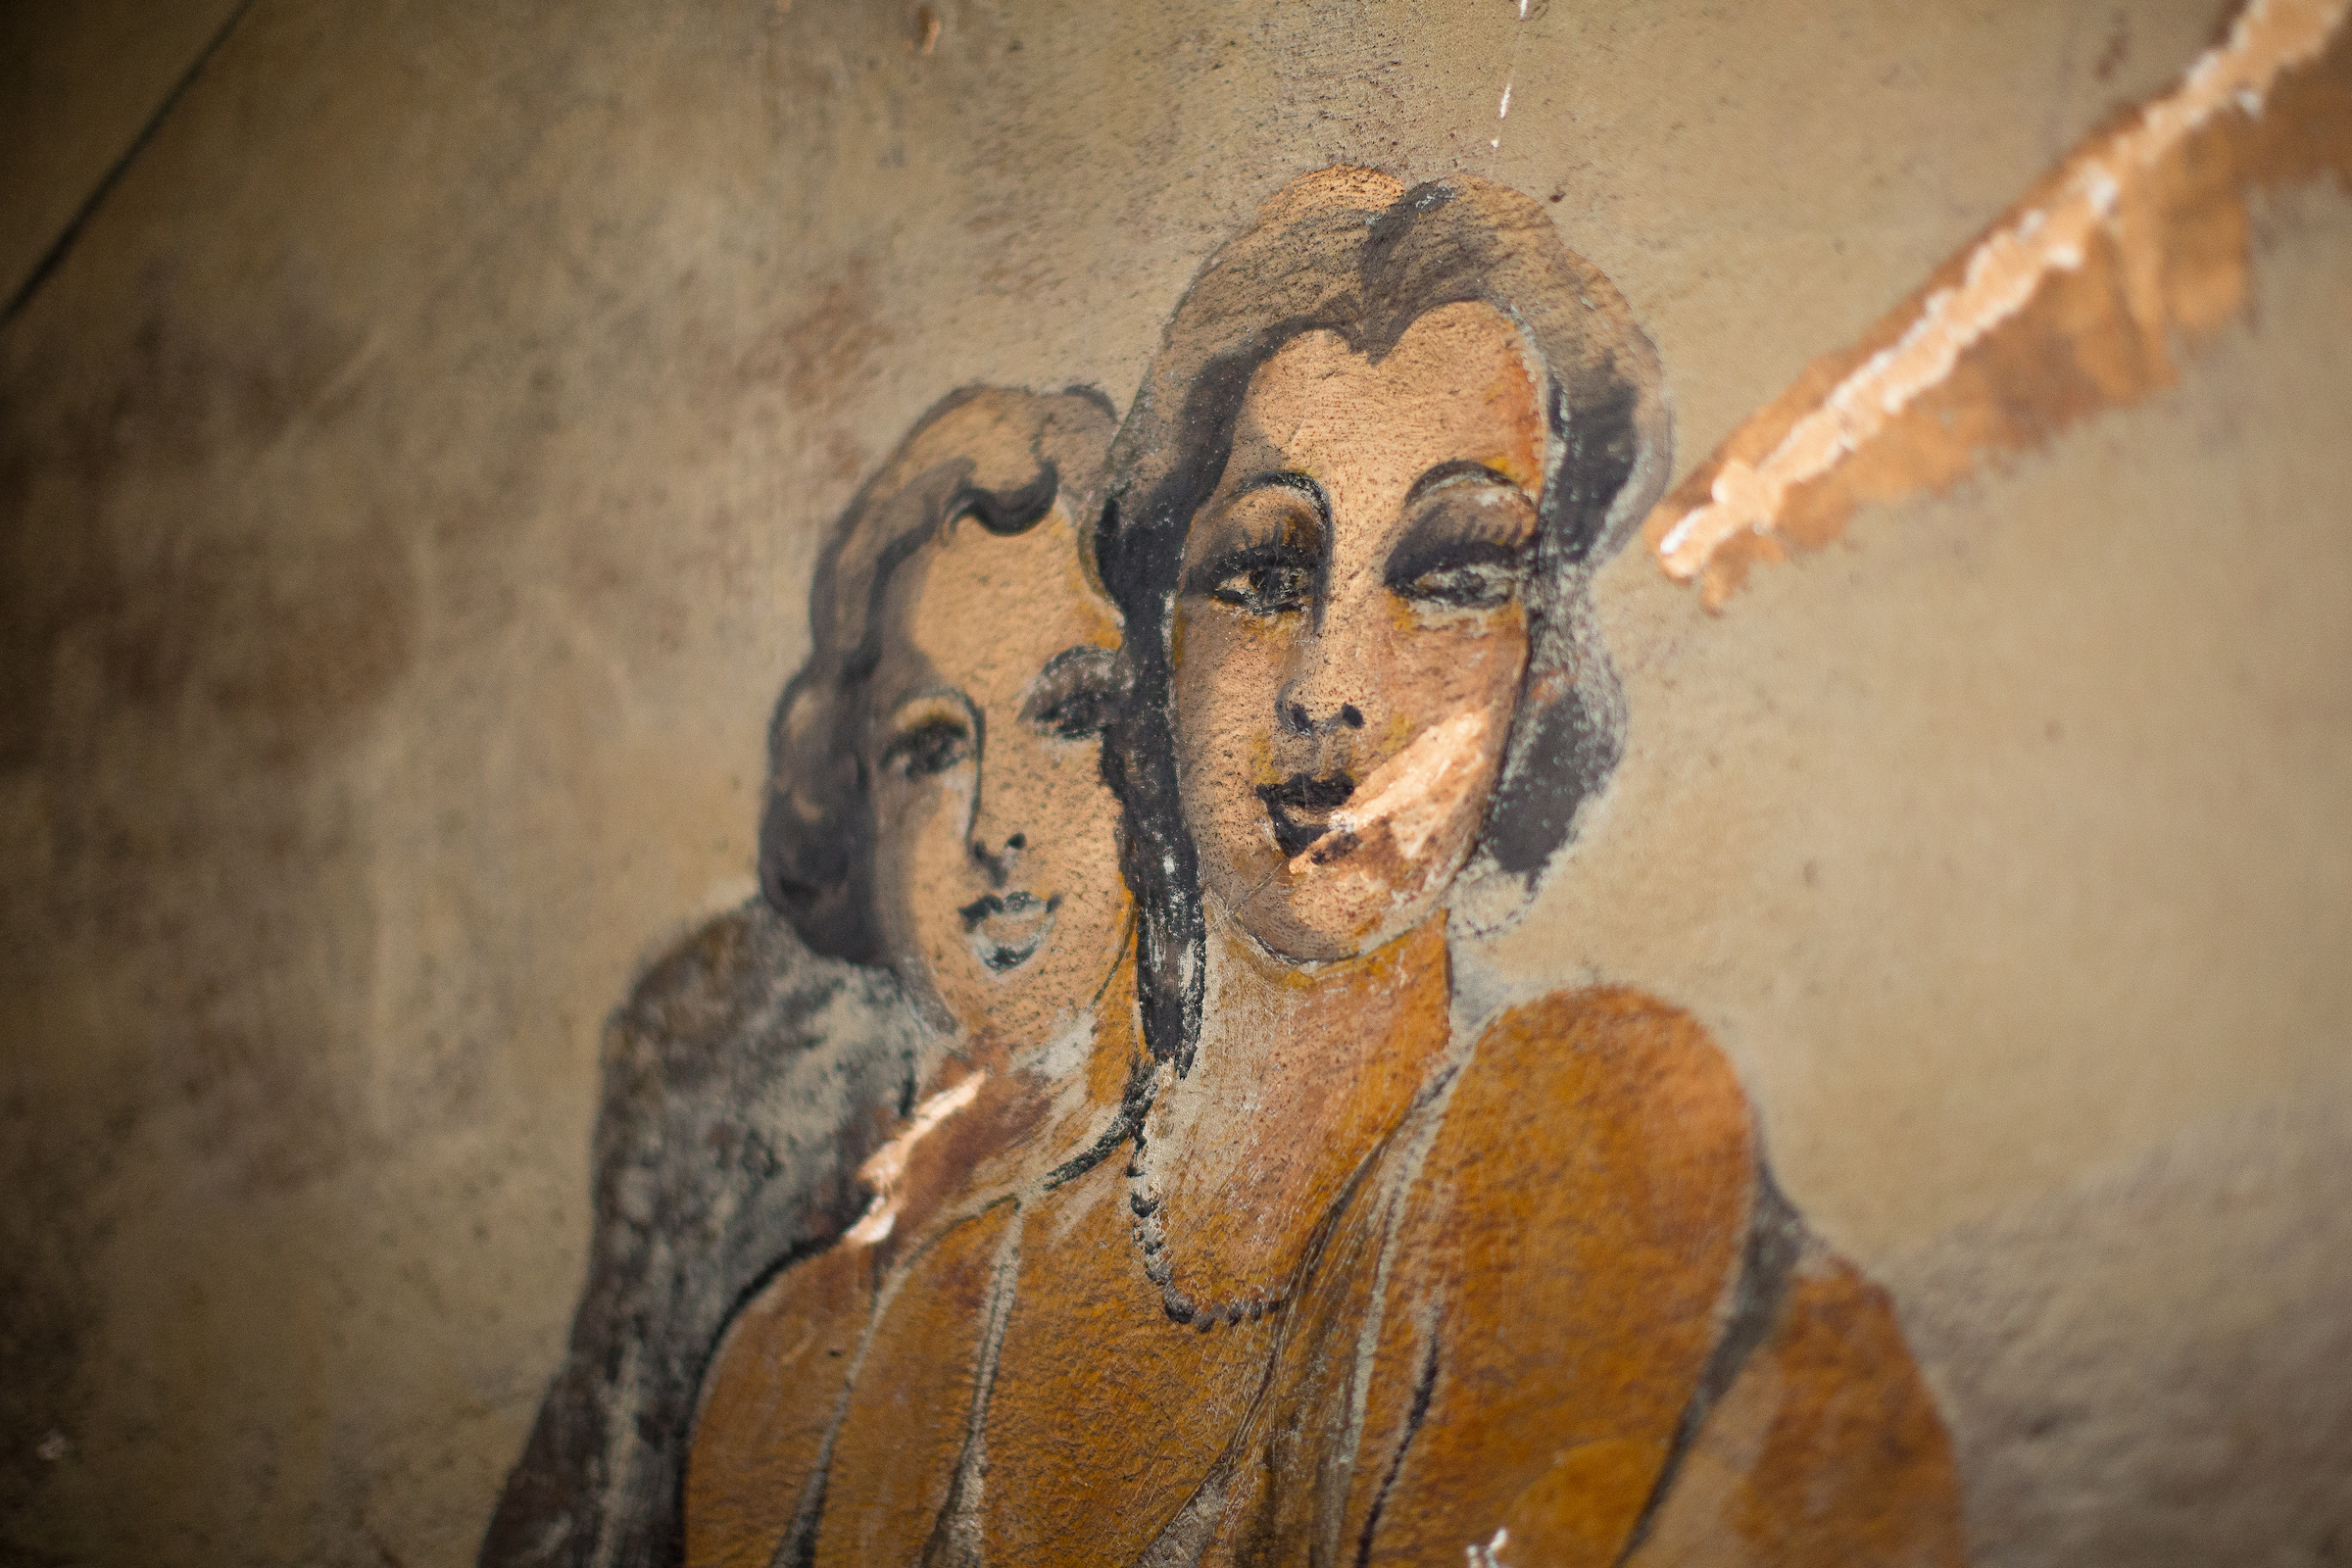 A painting of two women found on the walls inside the Louisa Hotel in Seattle